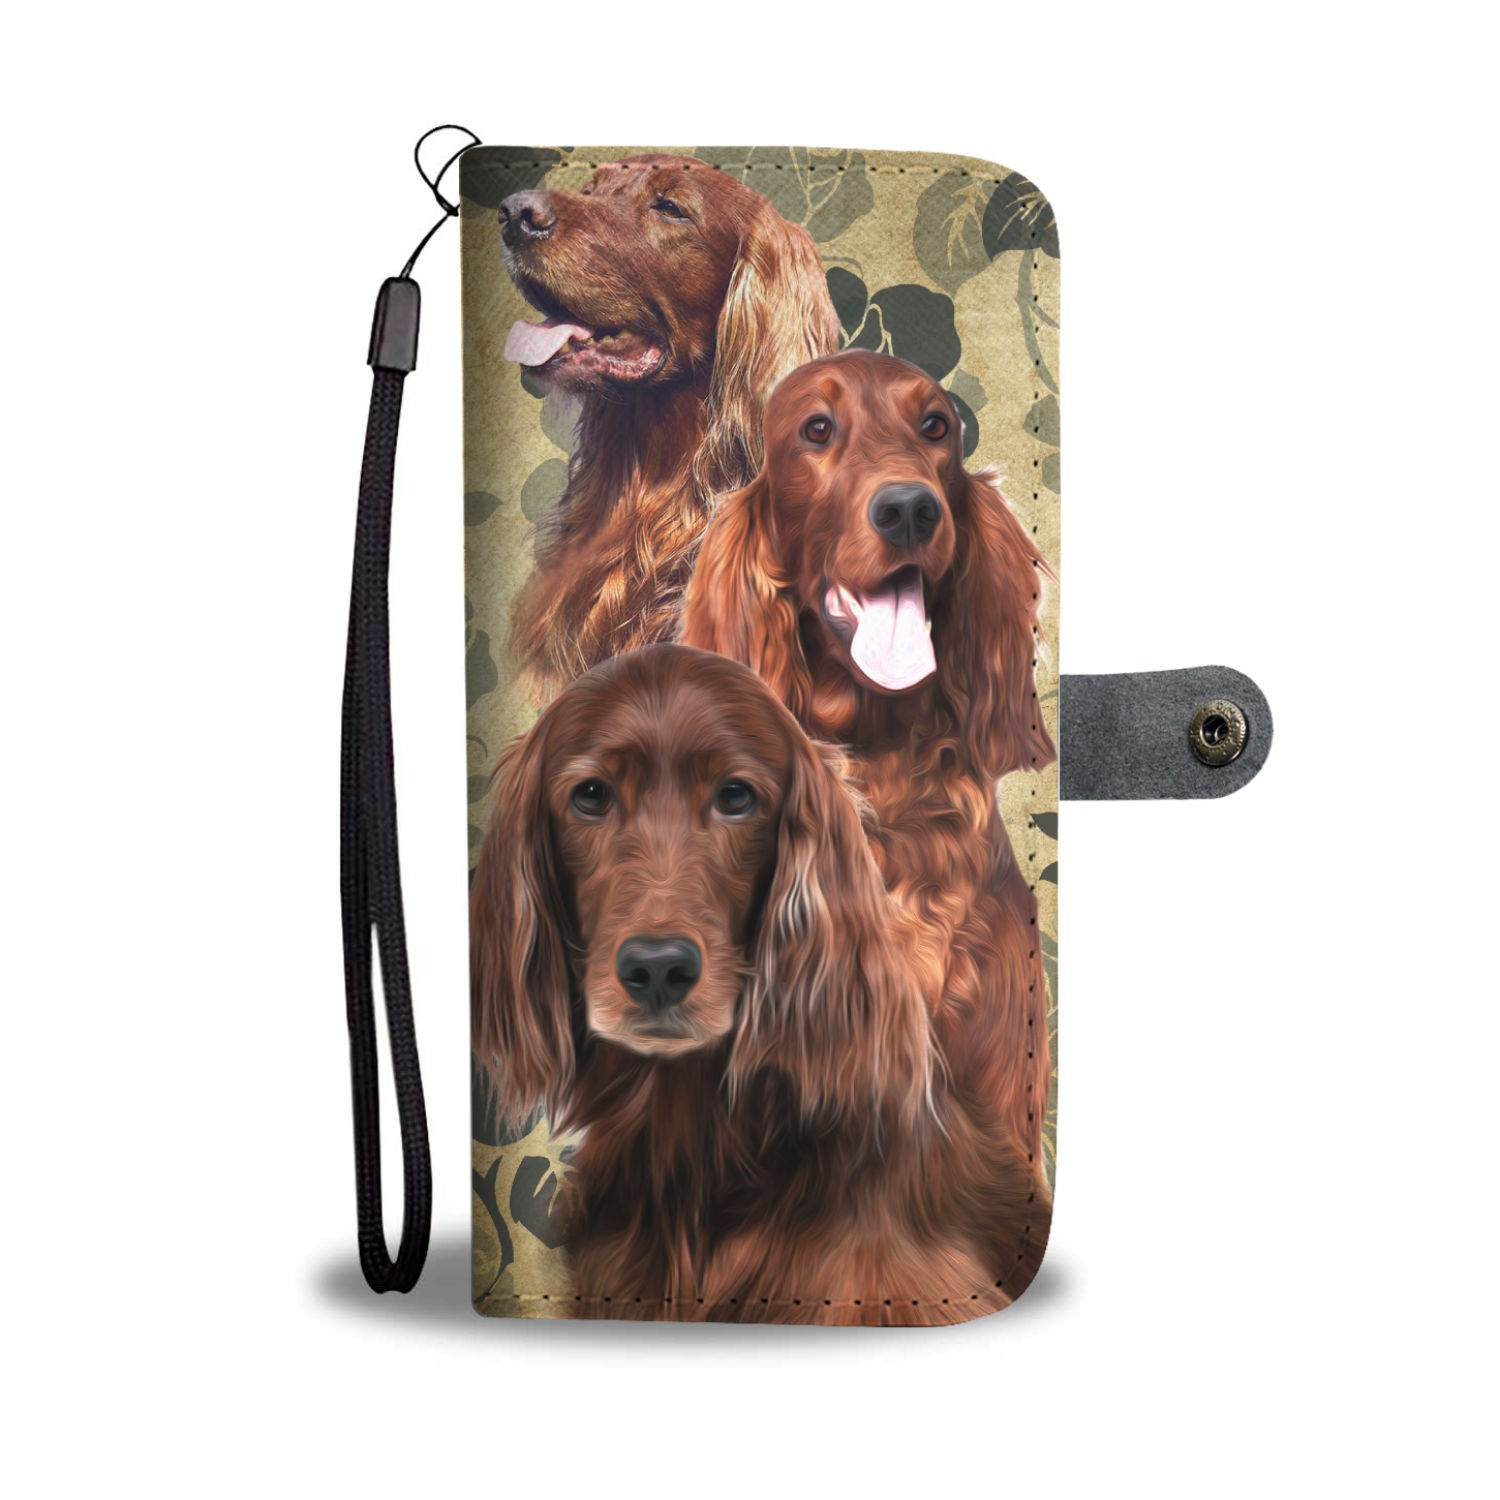 Irish Setter - Wallet Case